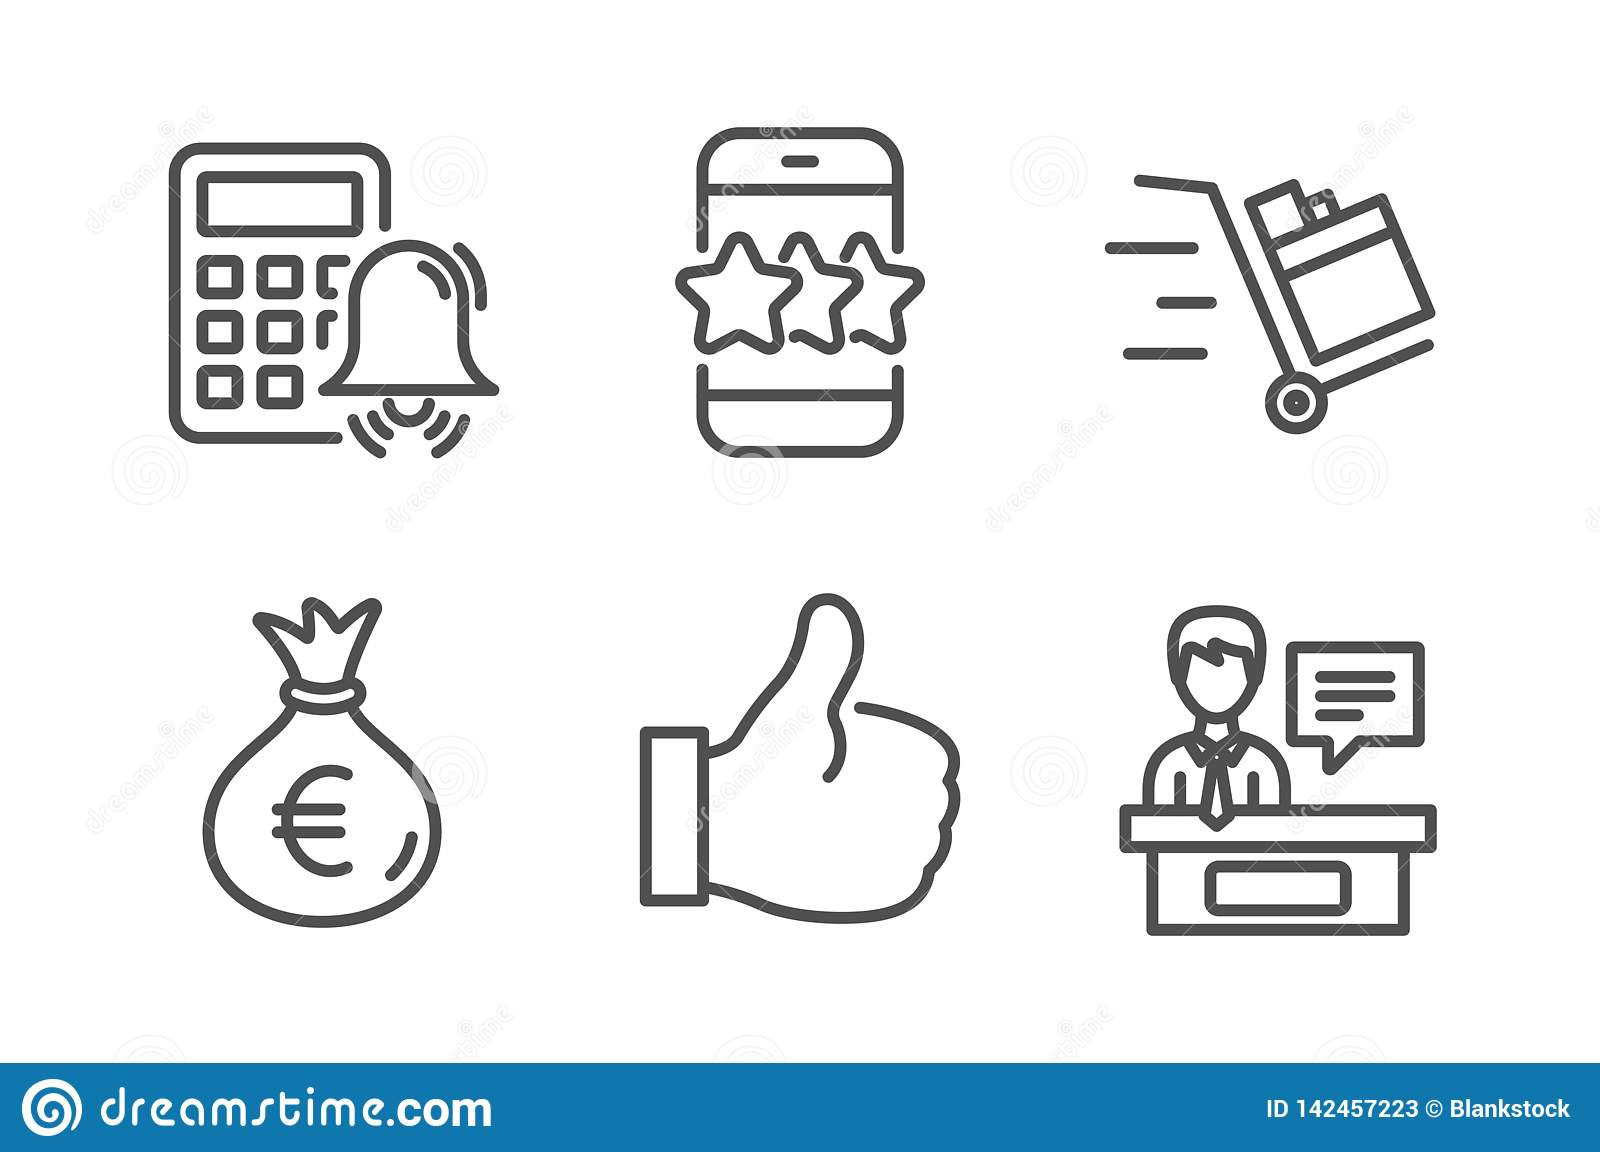 hight resolution of star like and calculator alarm icons simple set push cart money bag and exhibitors signs phone feedback thumbs up business set line star icon